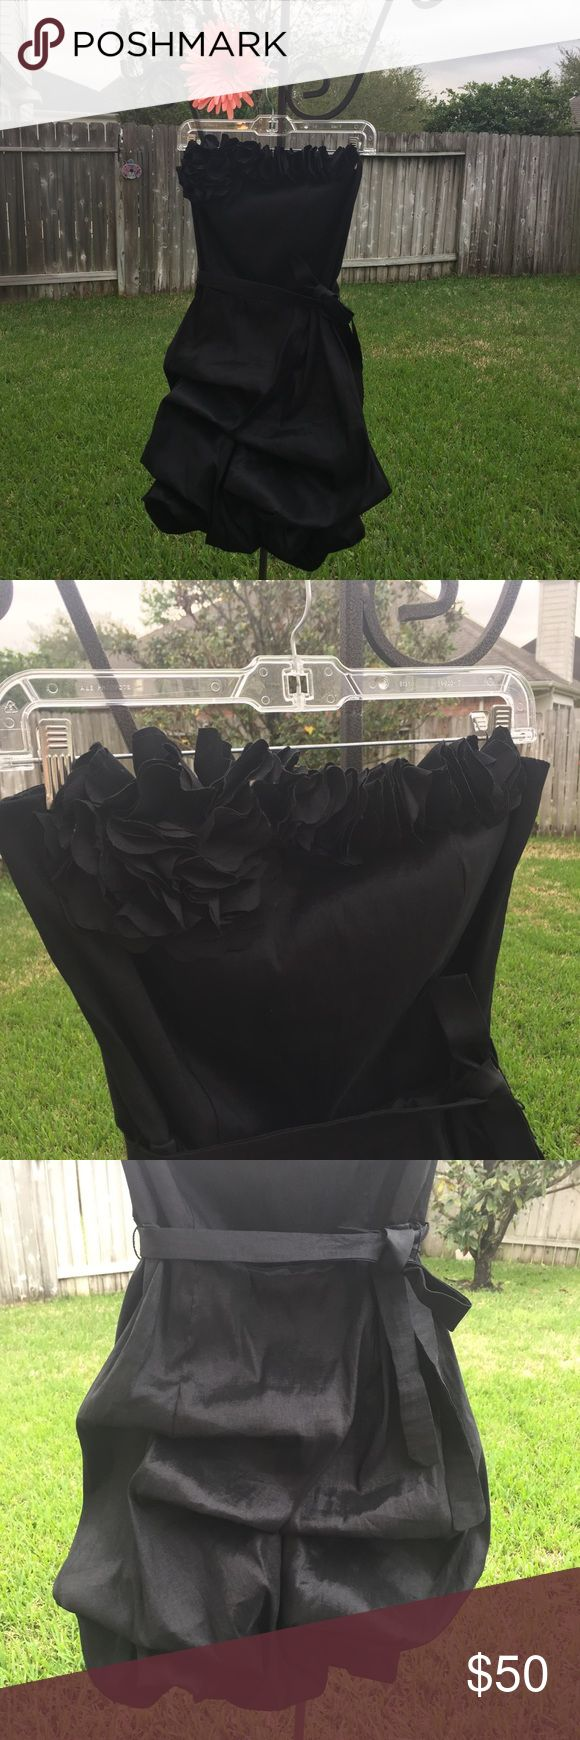 "Black Strapless Formal Polyester/Nylon/Spandex blend BEAUTIFUL black formal ""poof"" dress! Two small tears hidden behind flouncy breast embellishment (see pics). Absolutely gorgeous, near new! Machine washable, even. Snap Dresses Strapless"